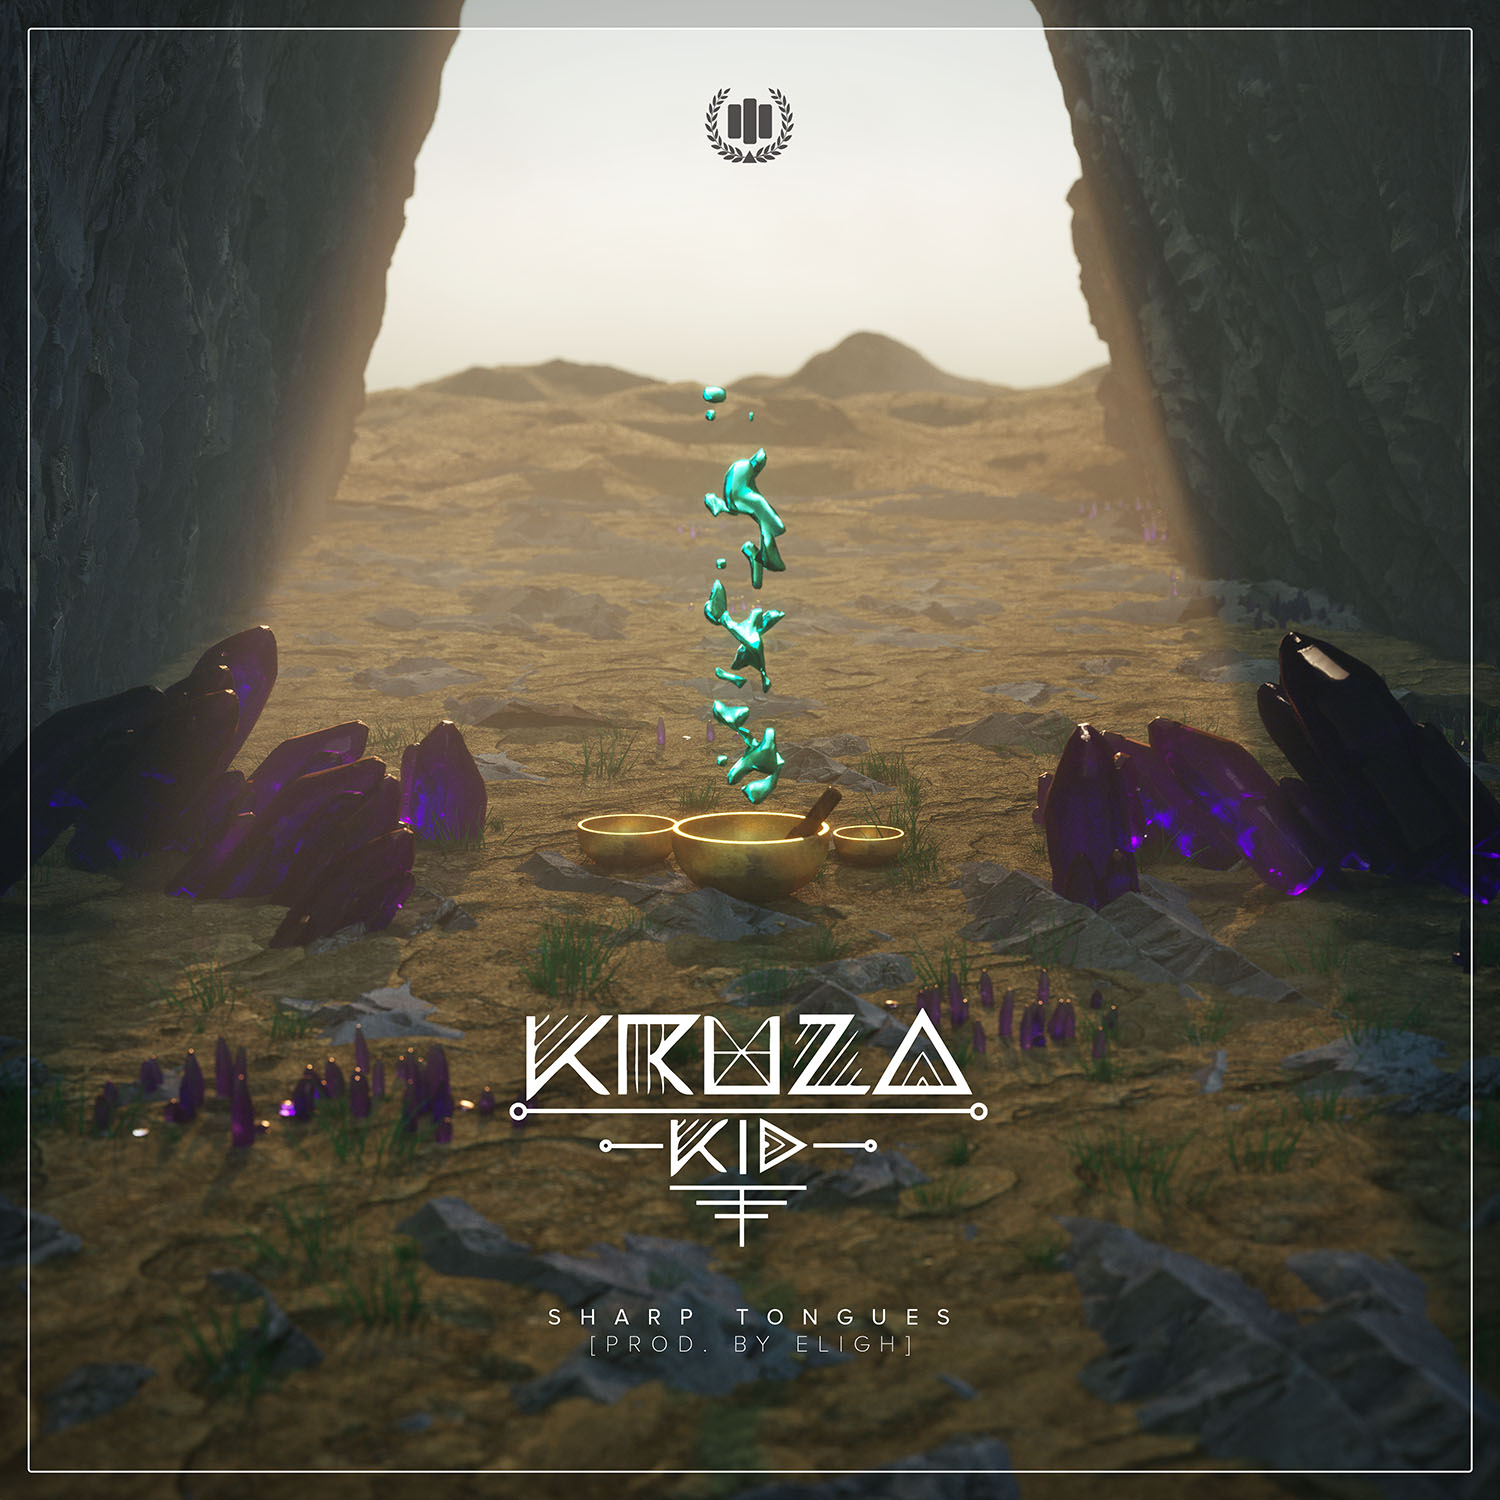 Kruza Kid Releases Sharp Tongues EP Produced by Eligh